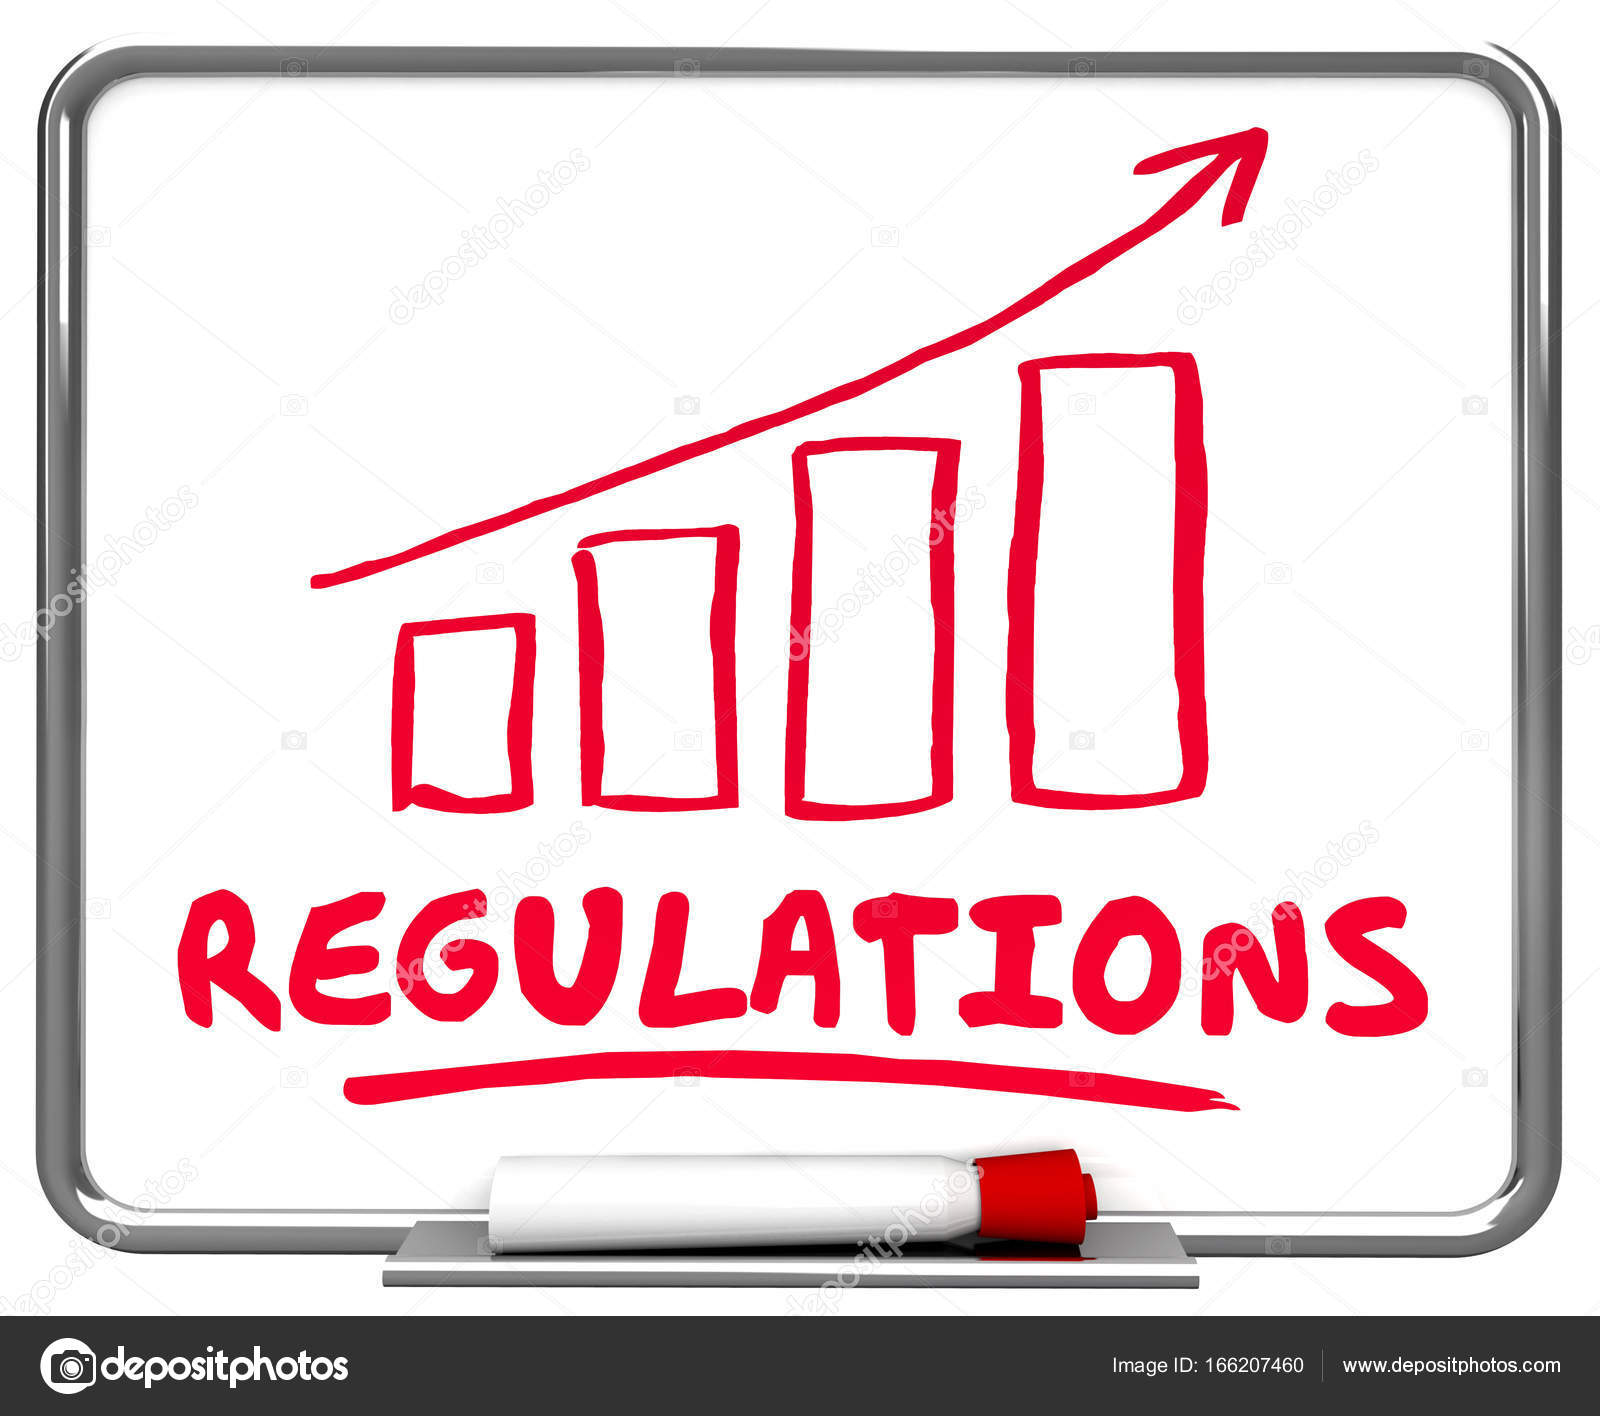 Rules clipart government regulation. Regulations control arrow stock